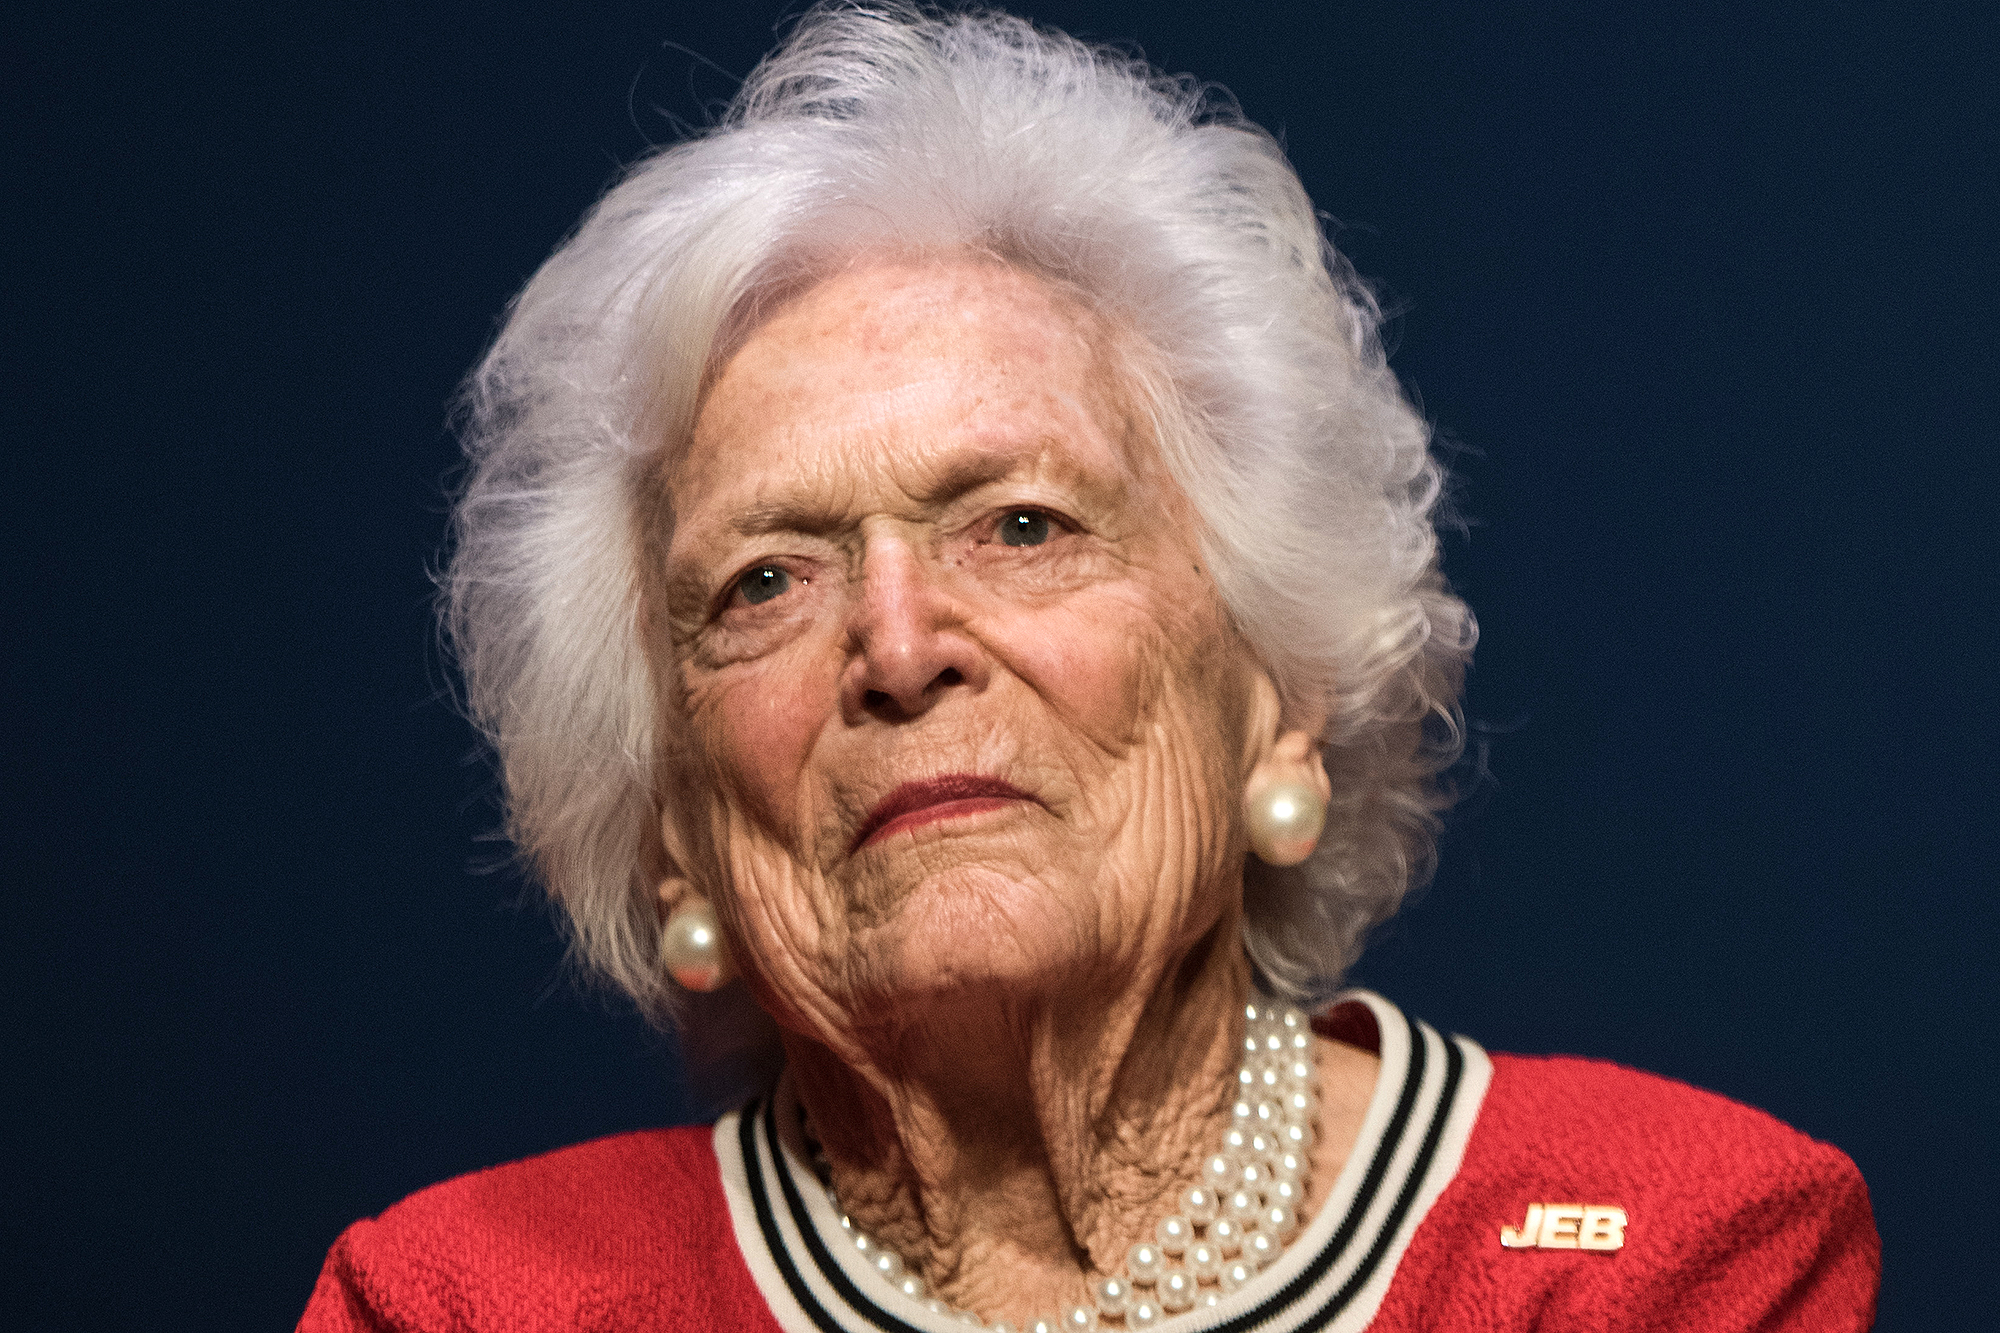 Addio Barbara Bush, è morta l'ex first lady